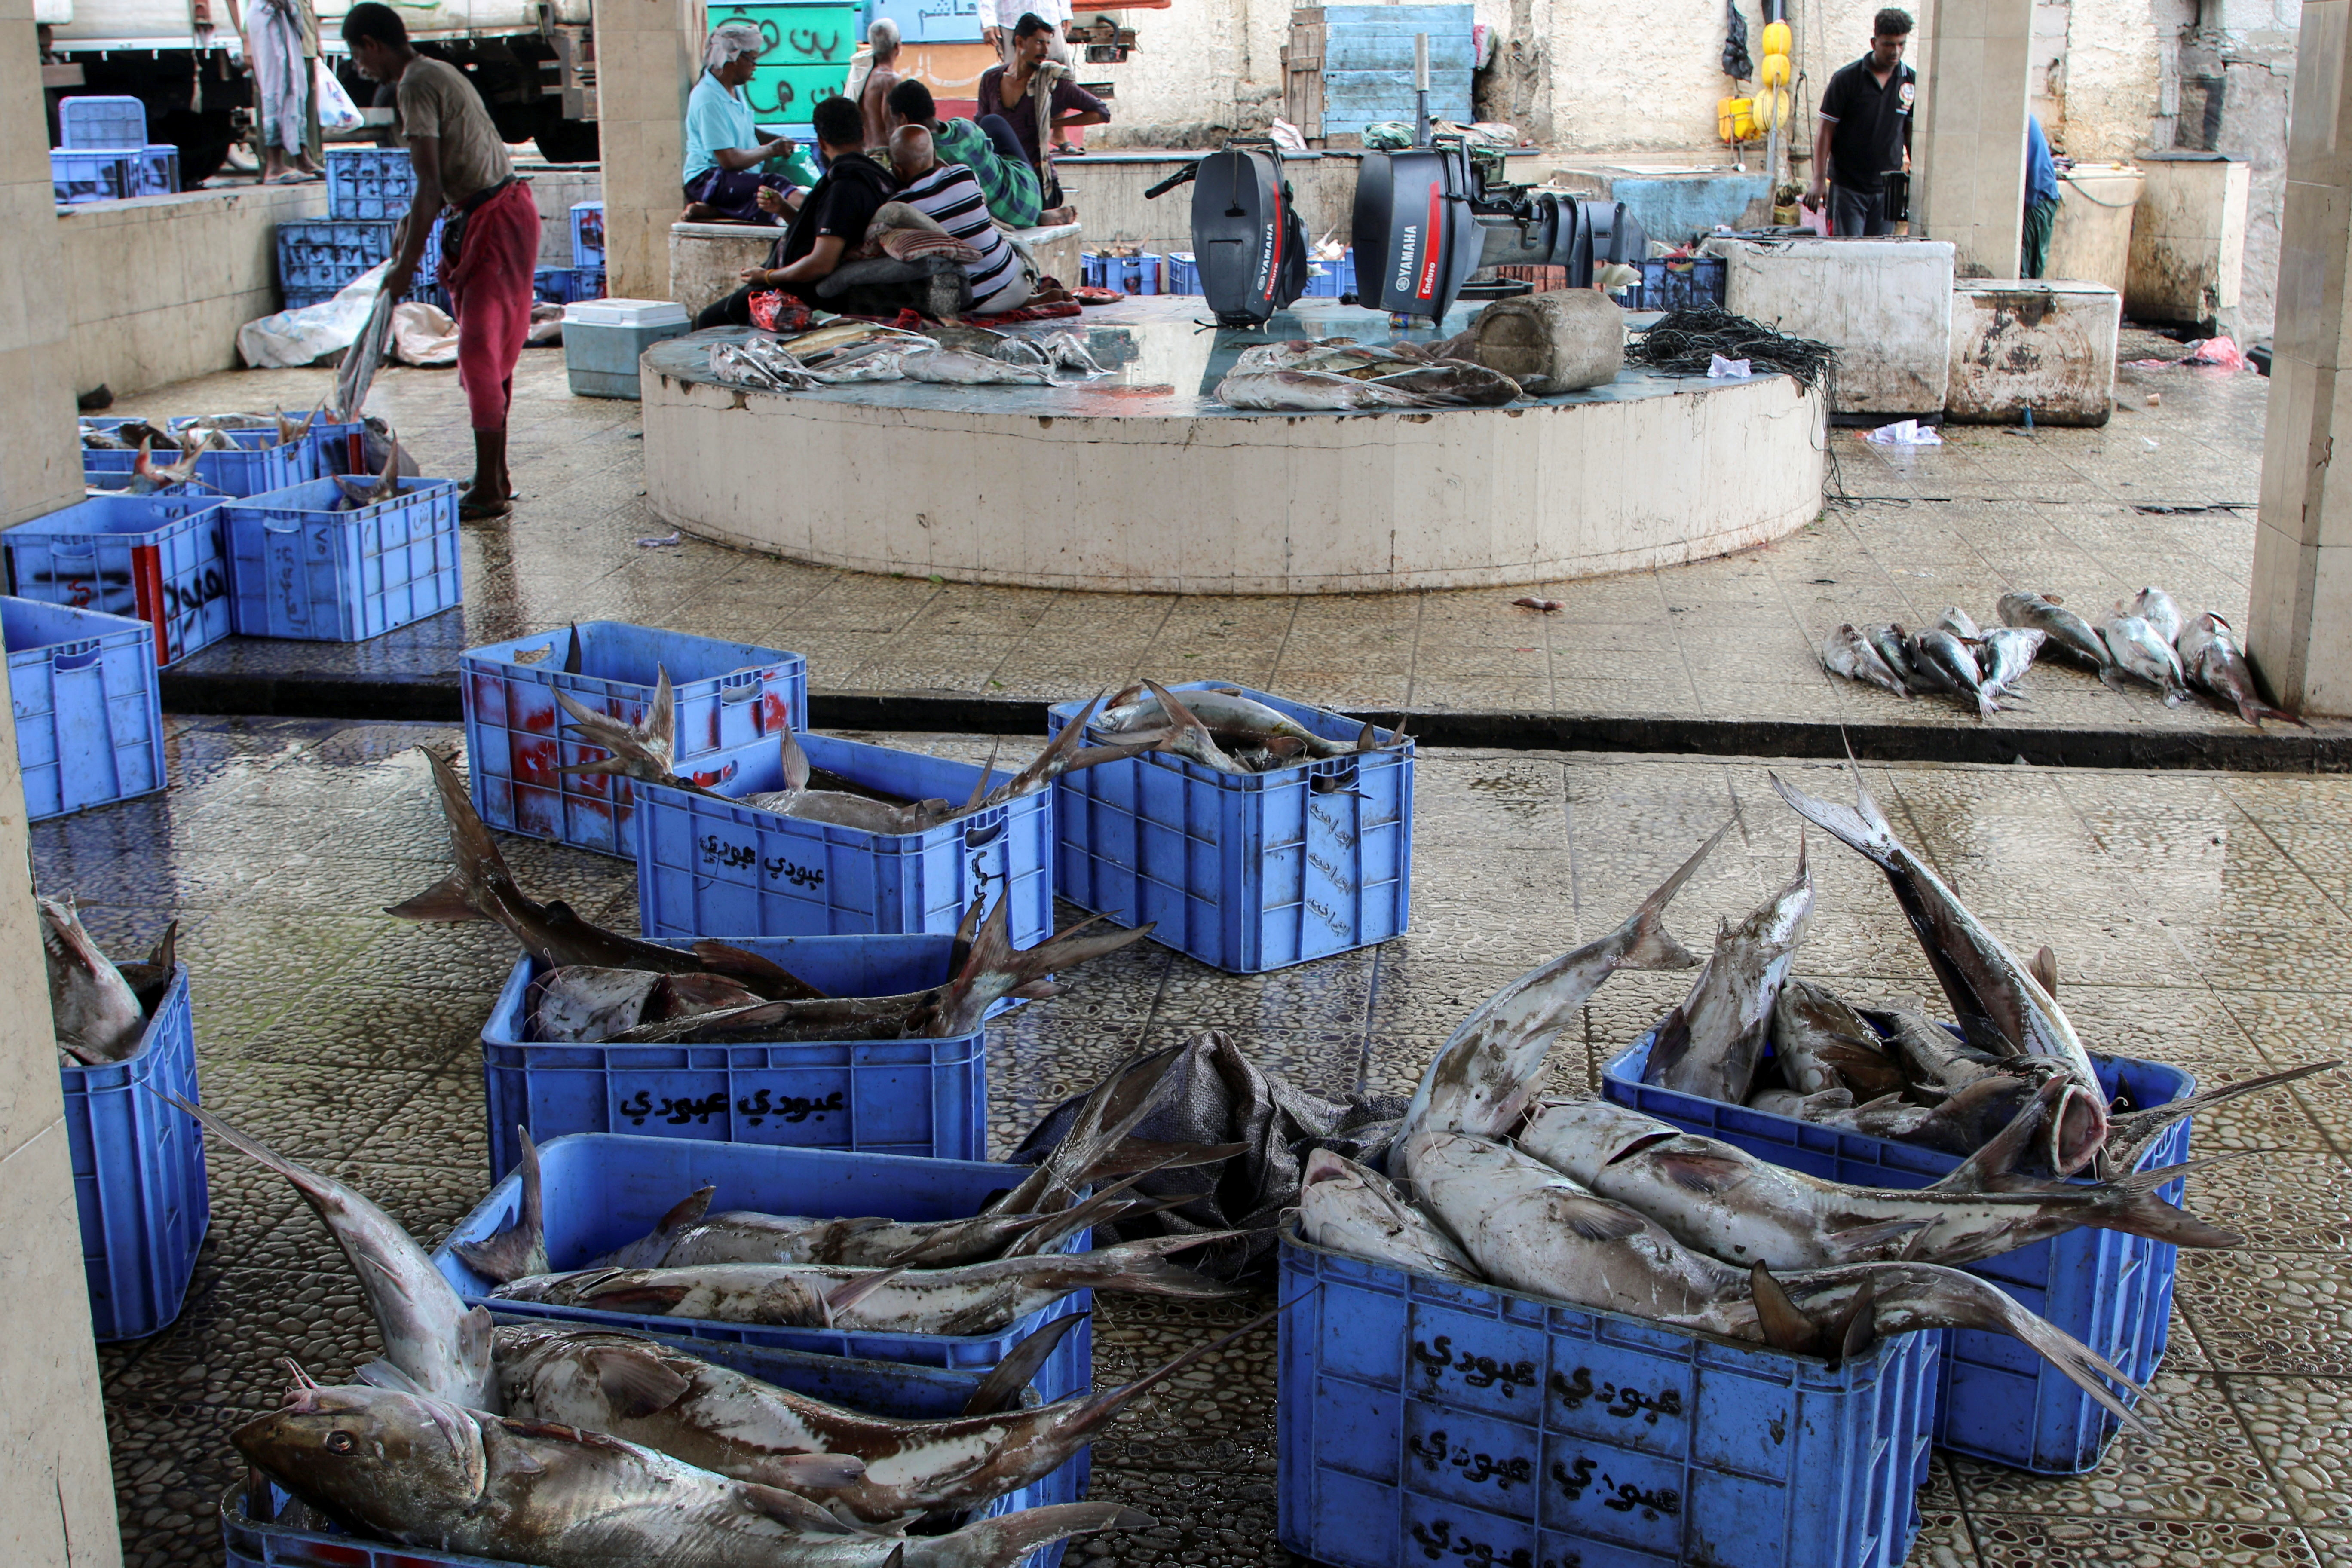 Boxes of fish are pictured at a fish market.